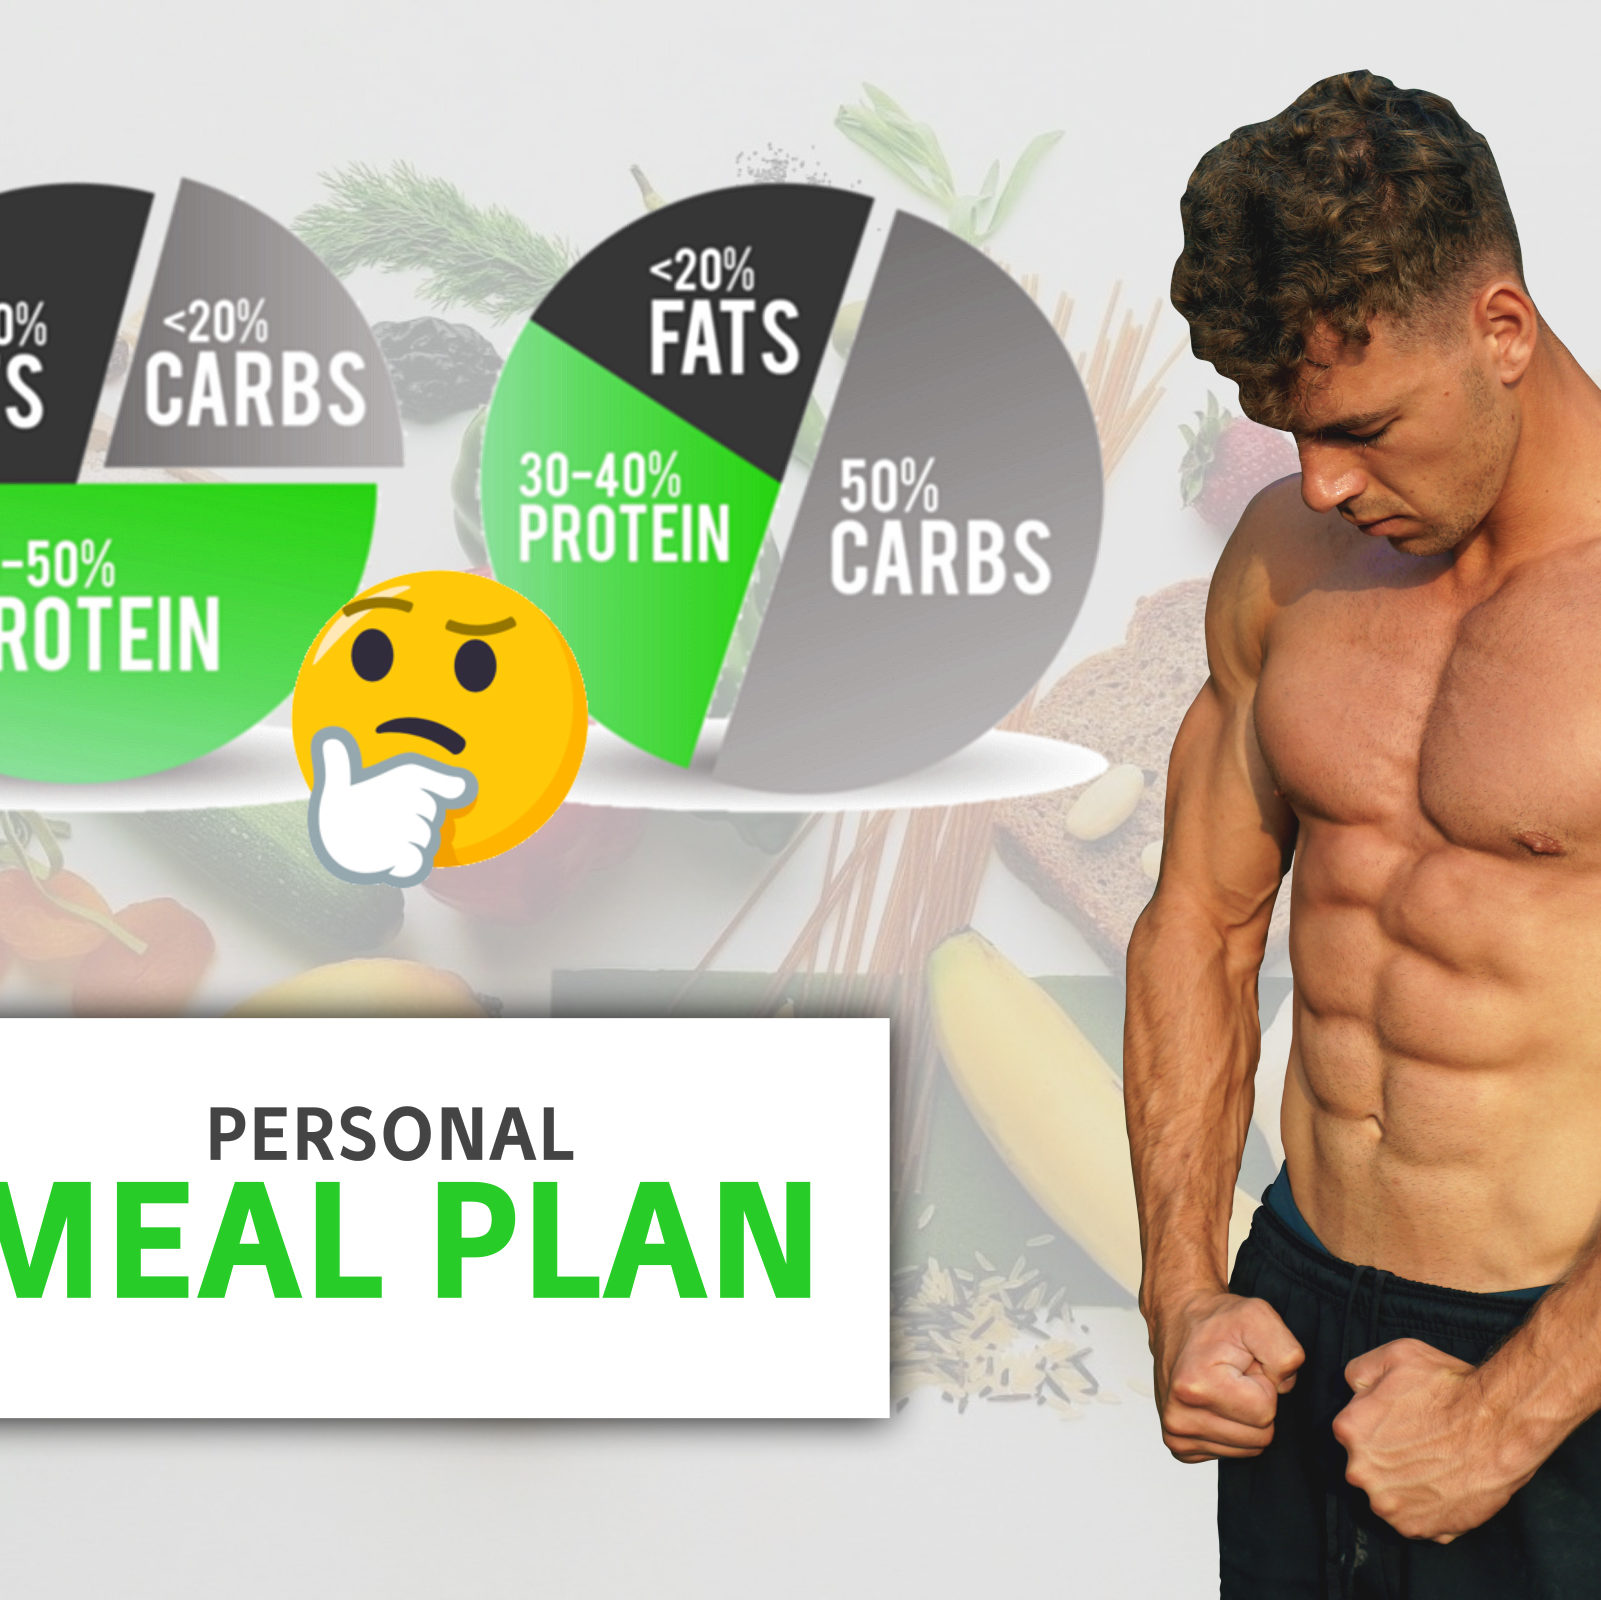 Personal Meal Plan Calisthenics